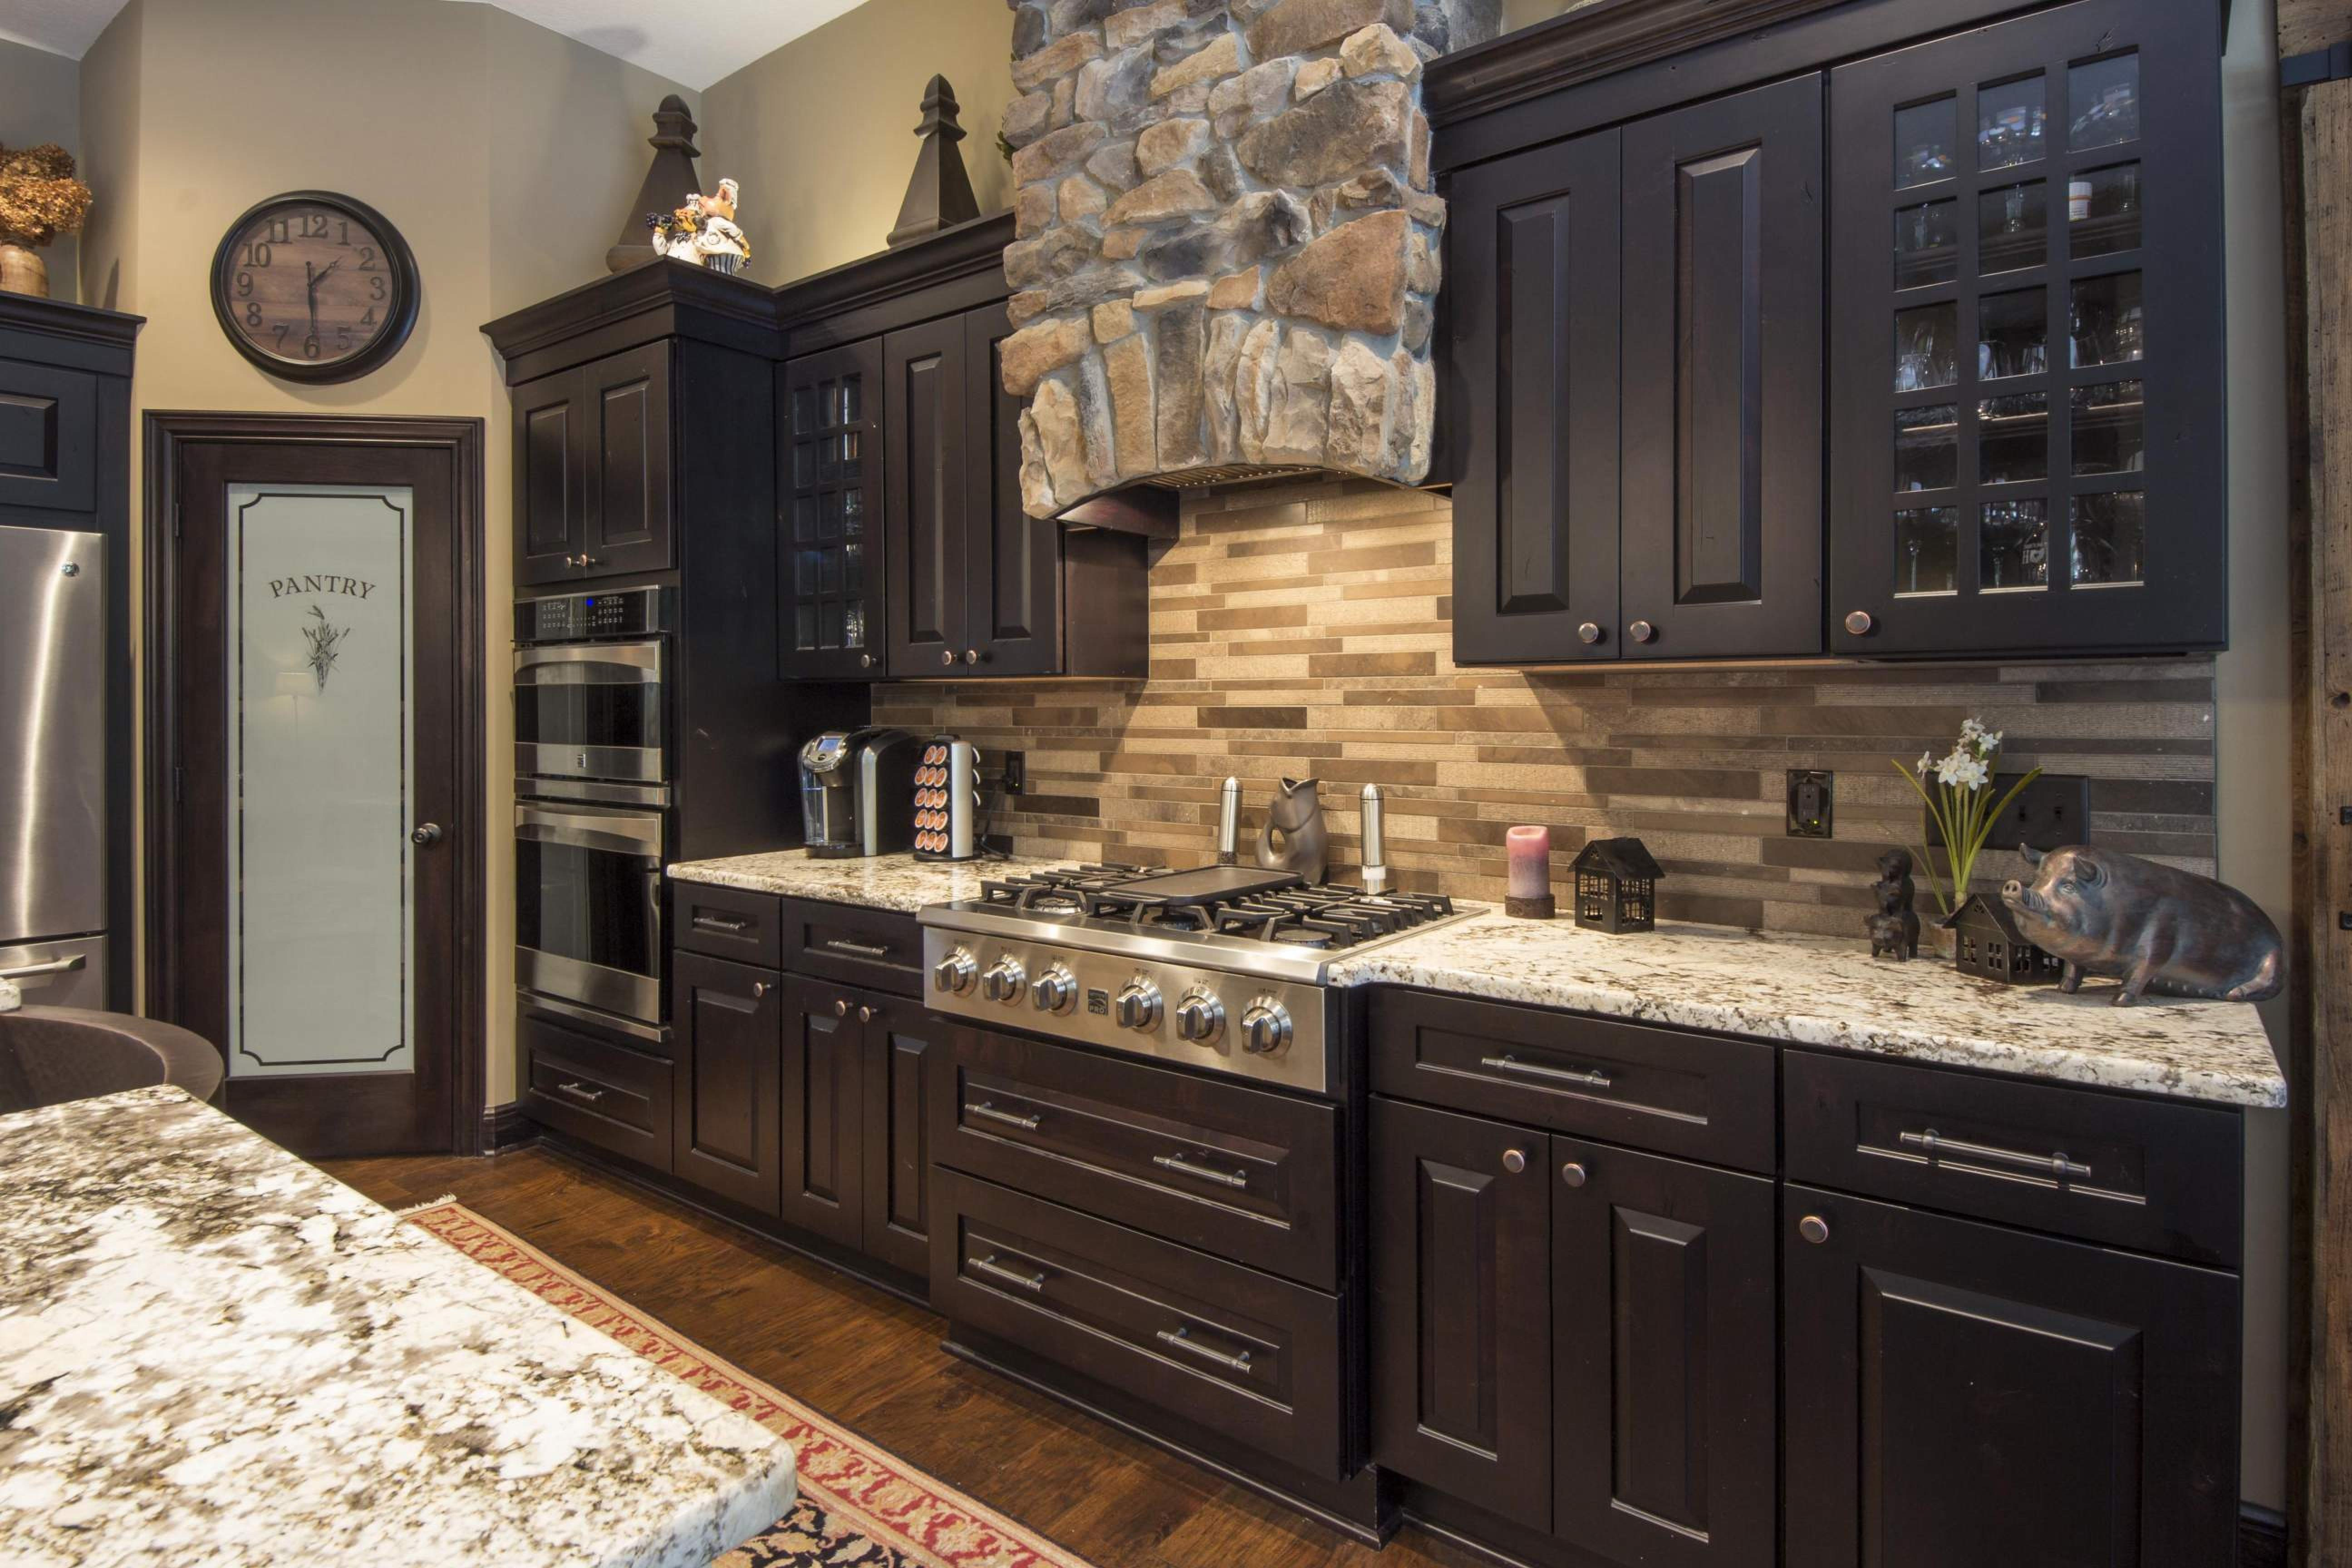 Kitchen featured in the Cleveland C1 By Classic Homes in Akron, OH